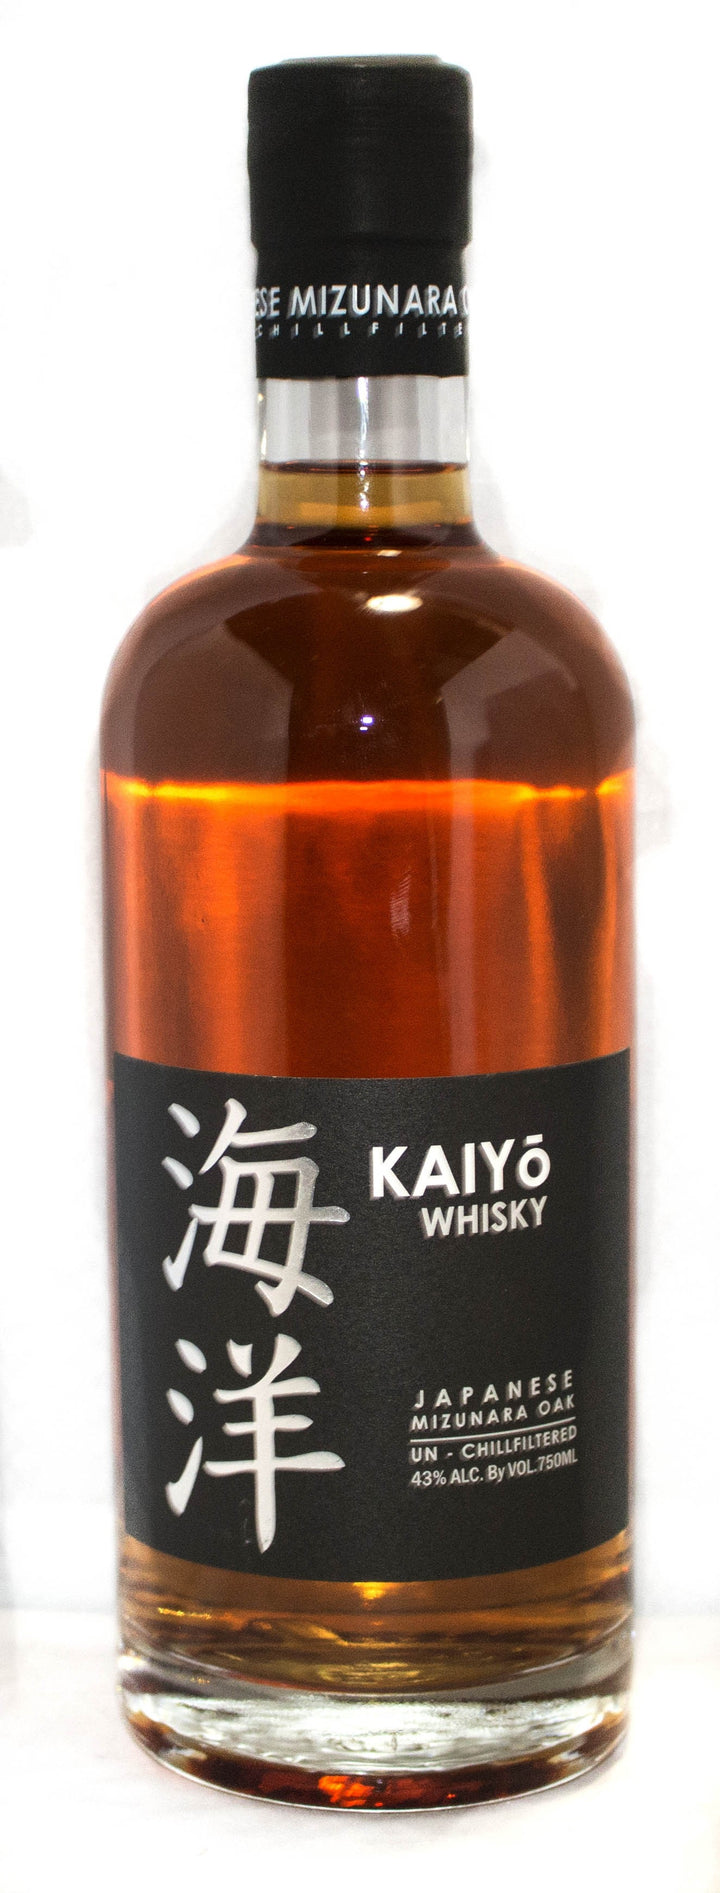 Kaiyo Whisky, Japanese Mizunara Oak. 43% ABV 750 ML